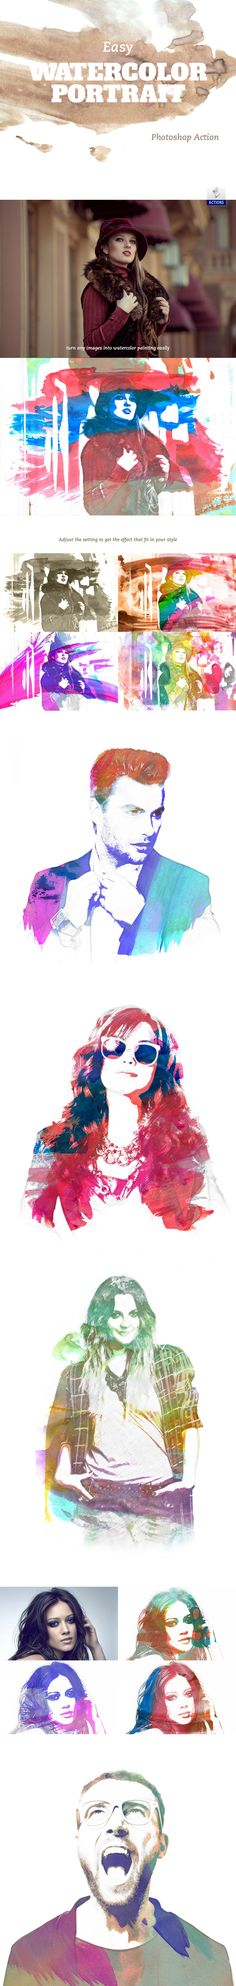 Free Action: Easy Watercolor Portrait (2.34 MB) | freedesignresources.net | #free #photoshop #action